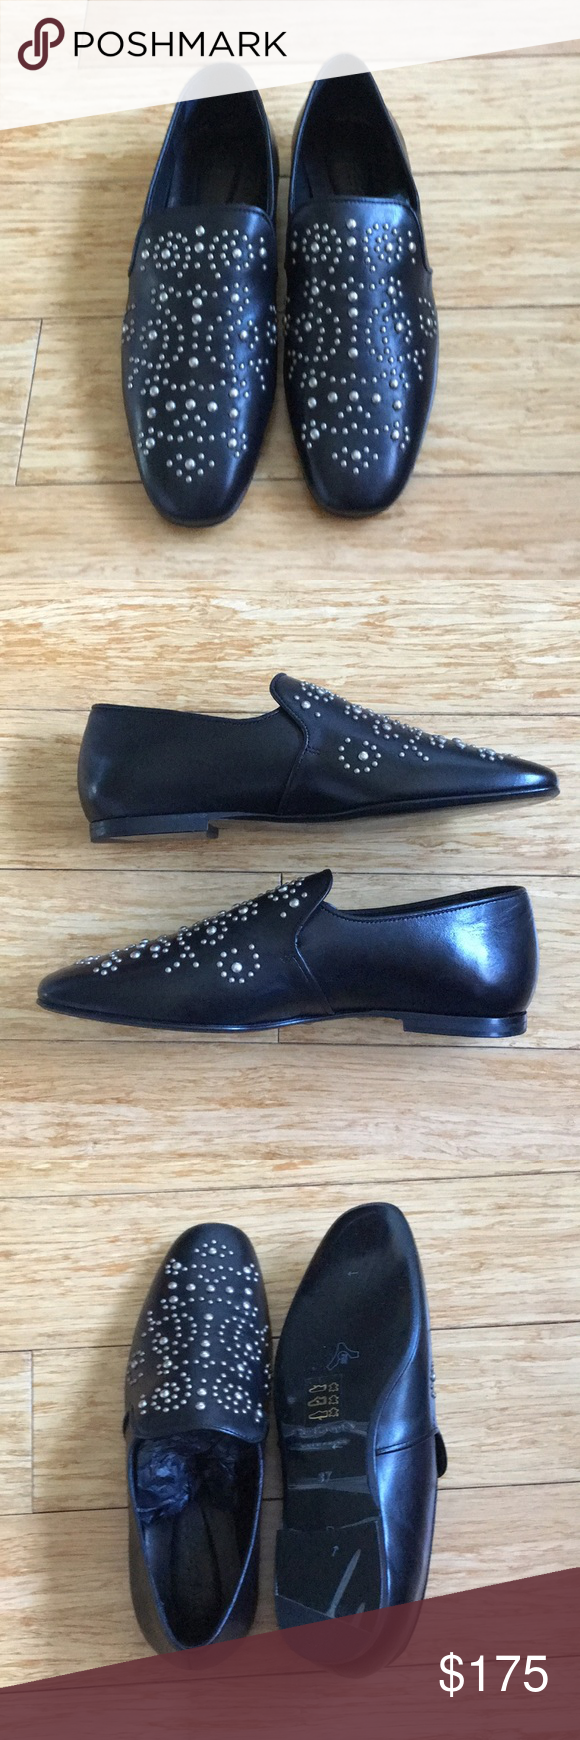 The Kooples Black Leather Studded Loafers Size 37 Studded Loafers Black Leather Dress Shoes Men [ 1740 x 580 Pixel ]